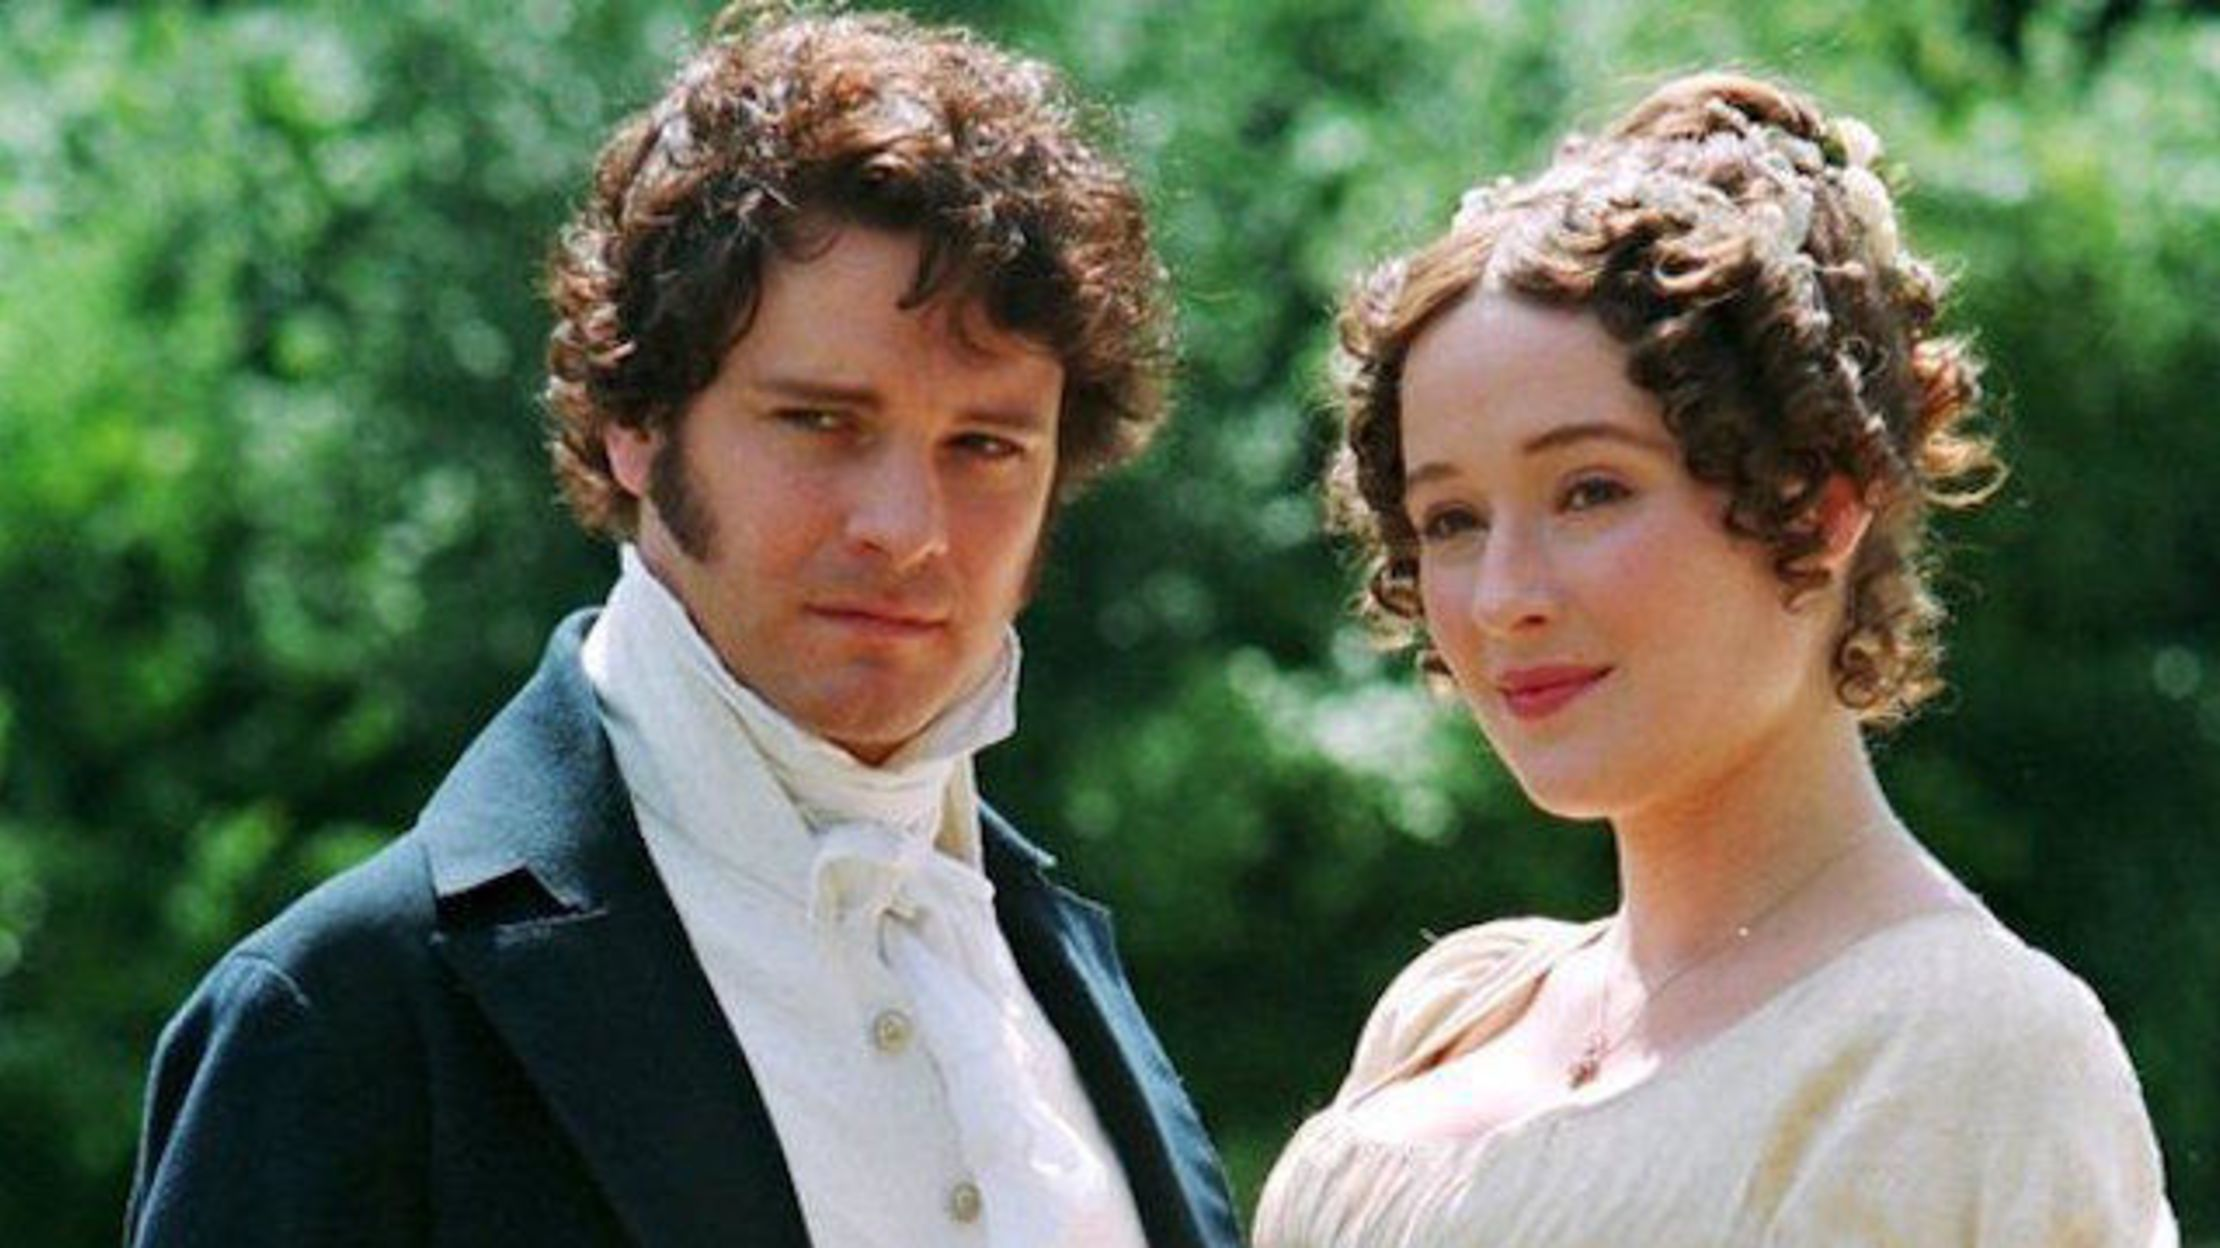 20 Fastidious Facts About BBC's 'Pride and Prejudice ...